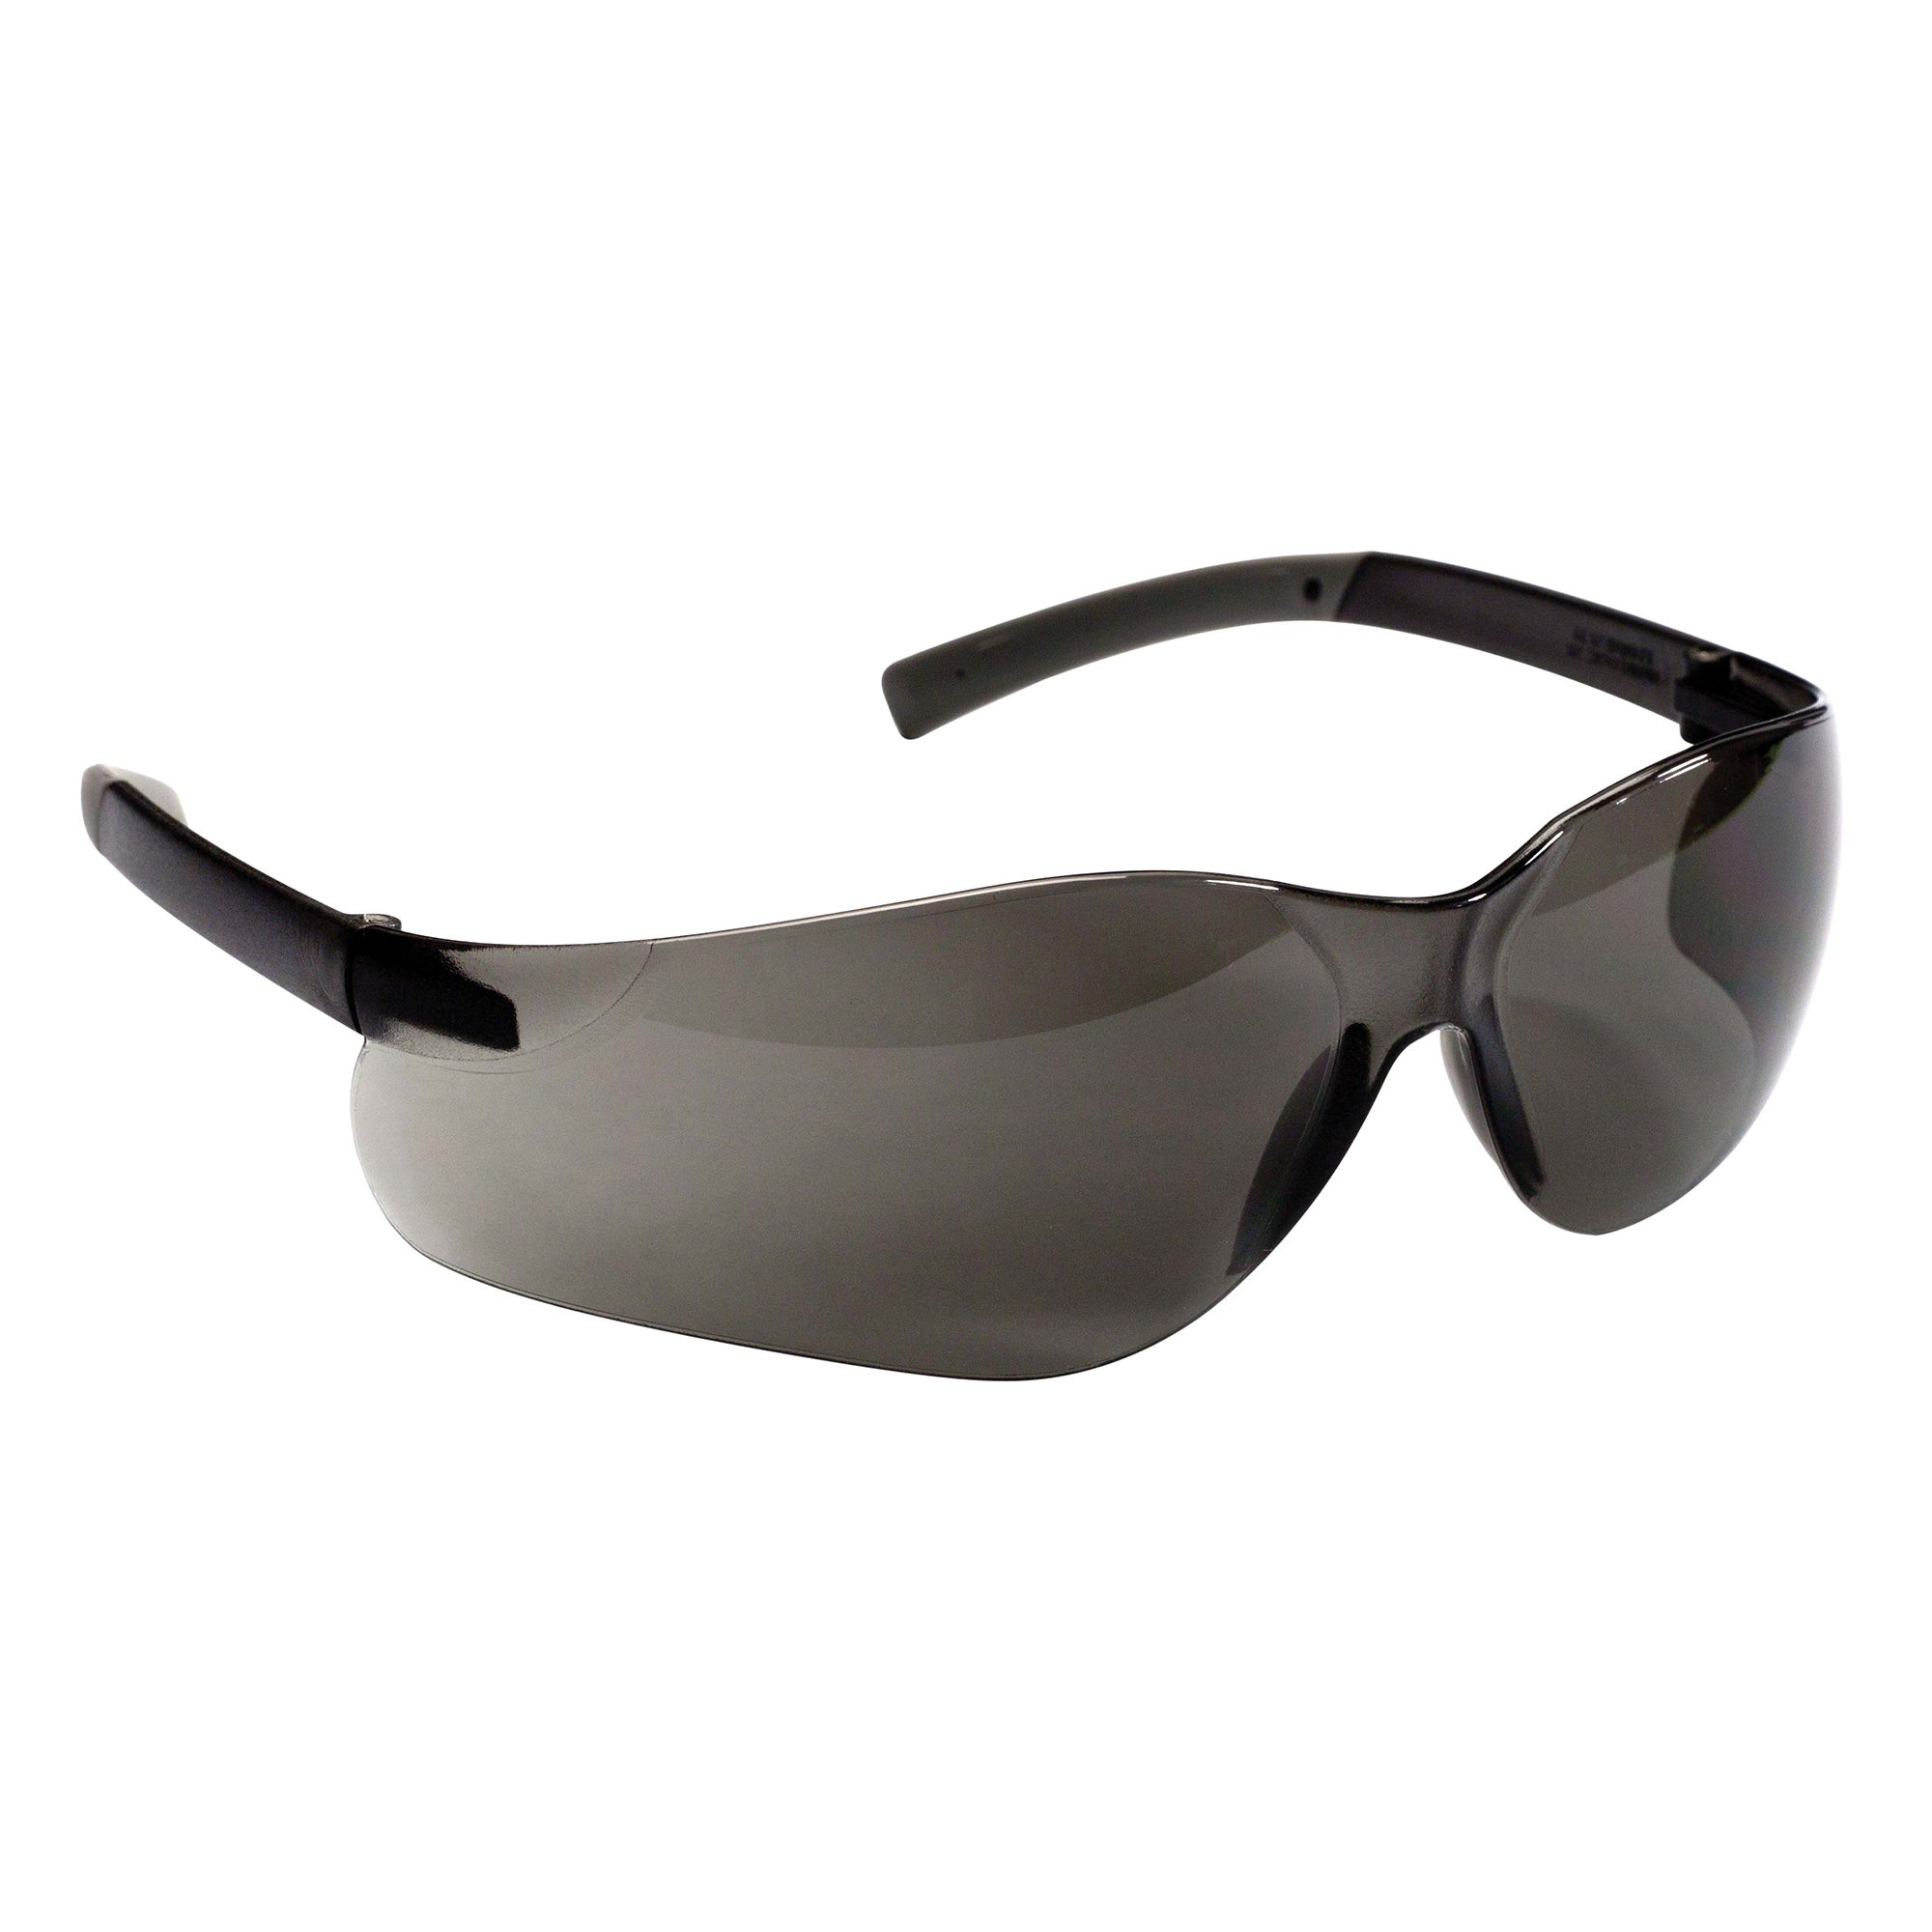 Jackson Safety V20 Purity Safety Glasses (25652), UV Protection, Hardcoated Smoke Lenses with Black Temples, 12 Pairs/Case by Jackson Safety (Image #2)